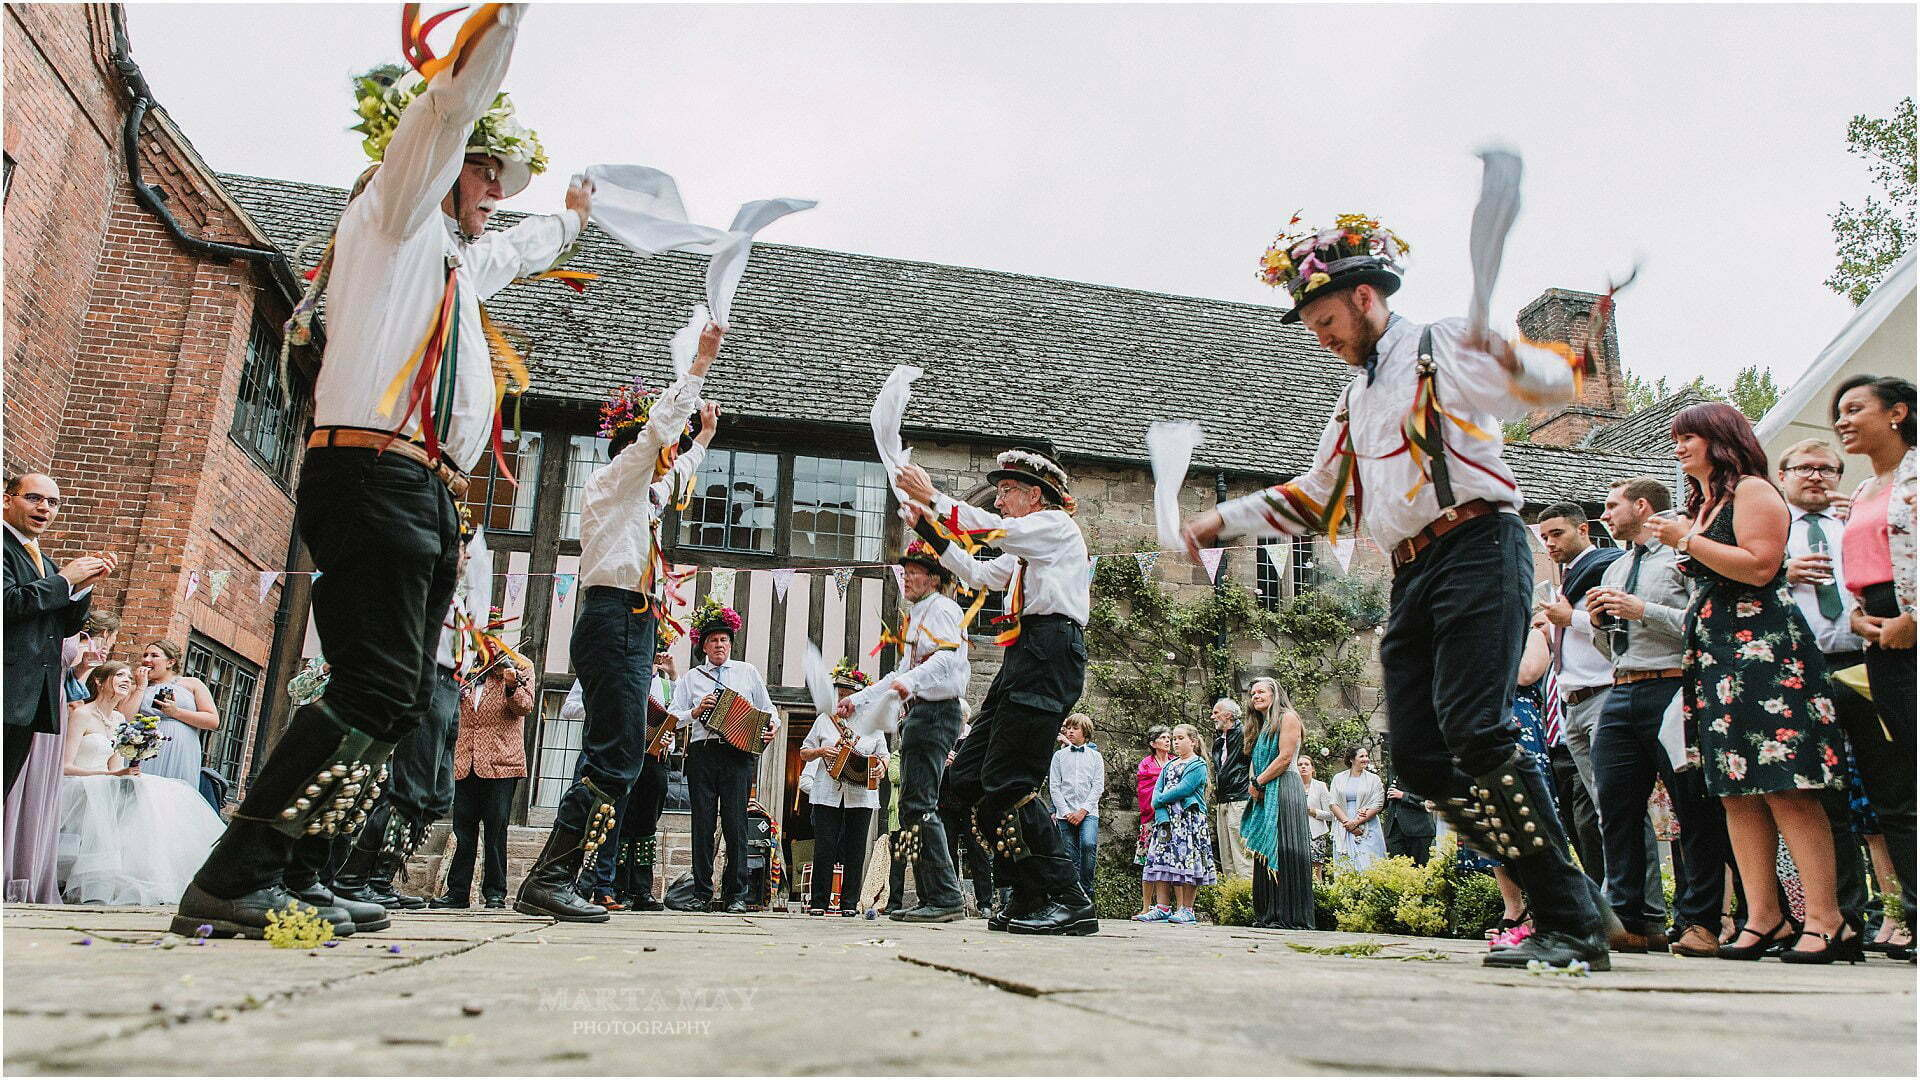 morris dancing wedding photography